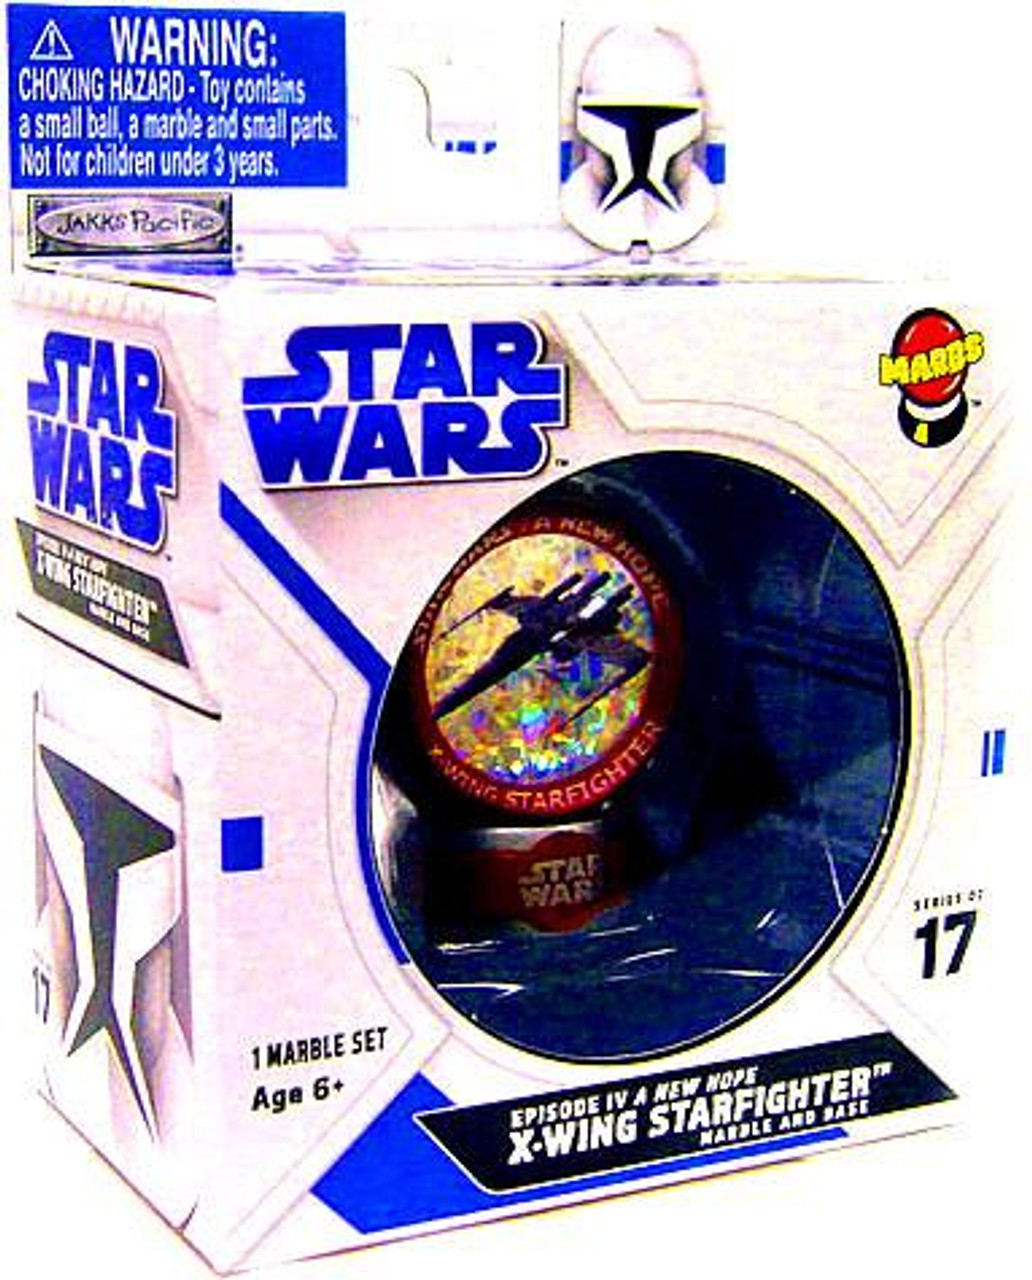 Star Wars A New Hope Marbs Series 2 X-Wing Starfighter Marble #17